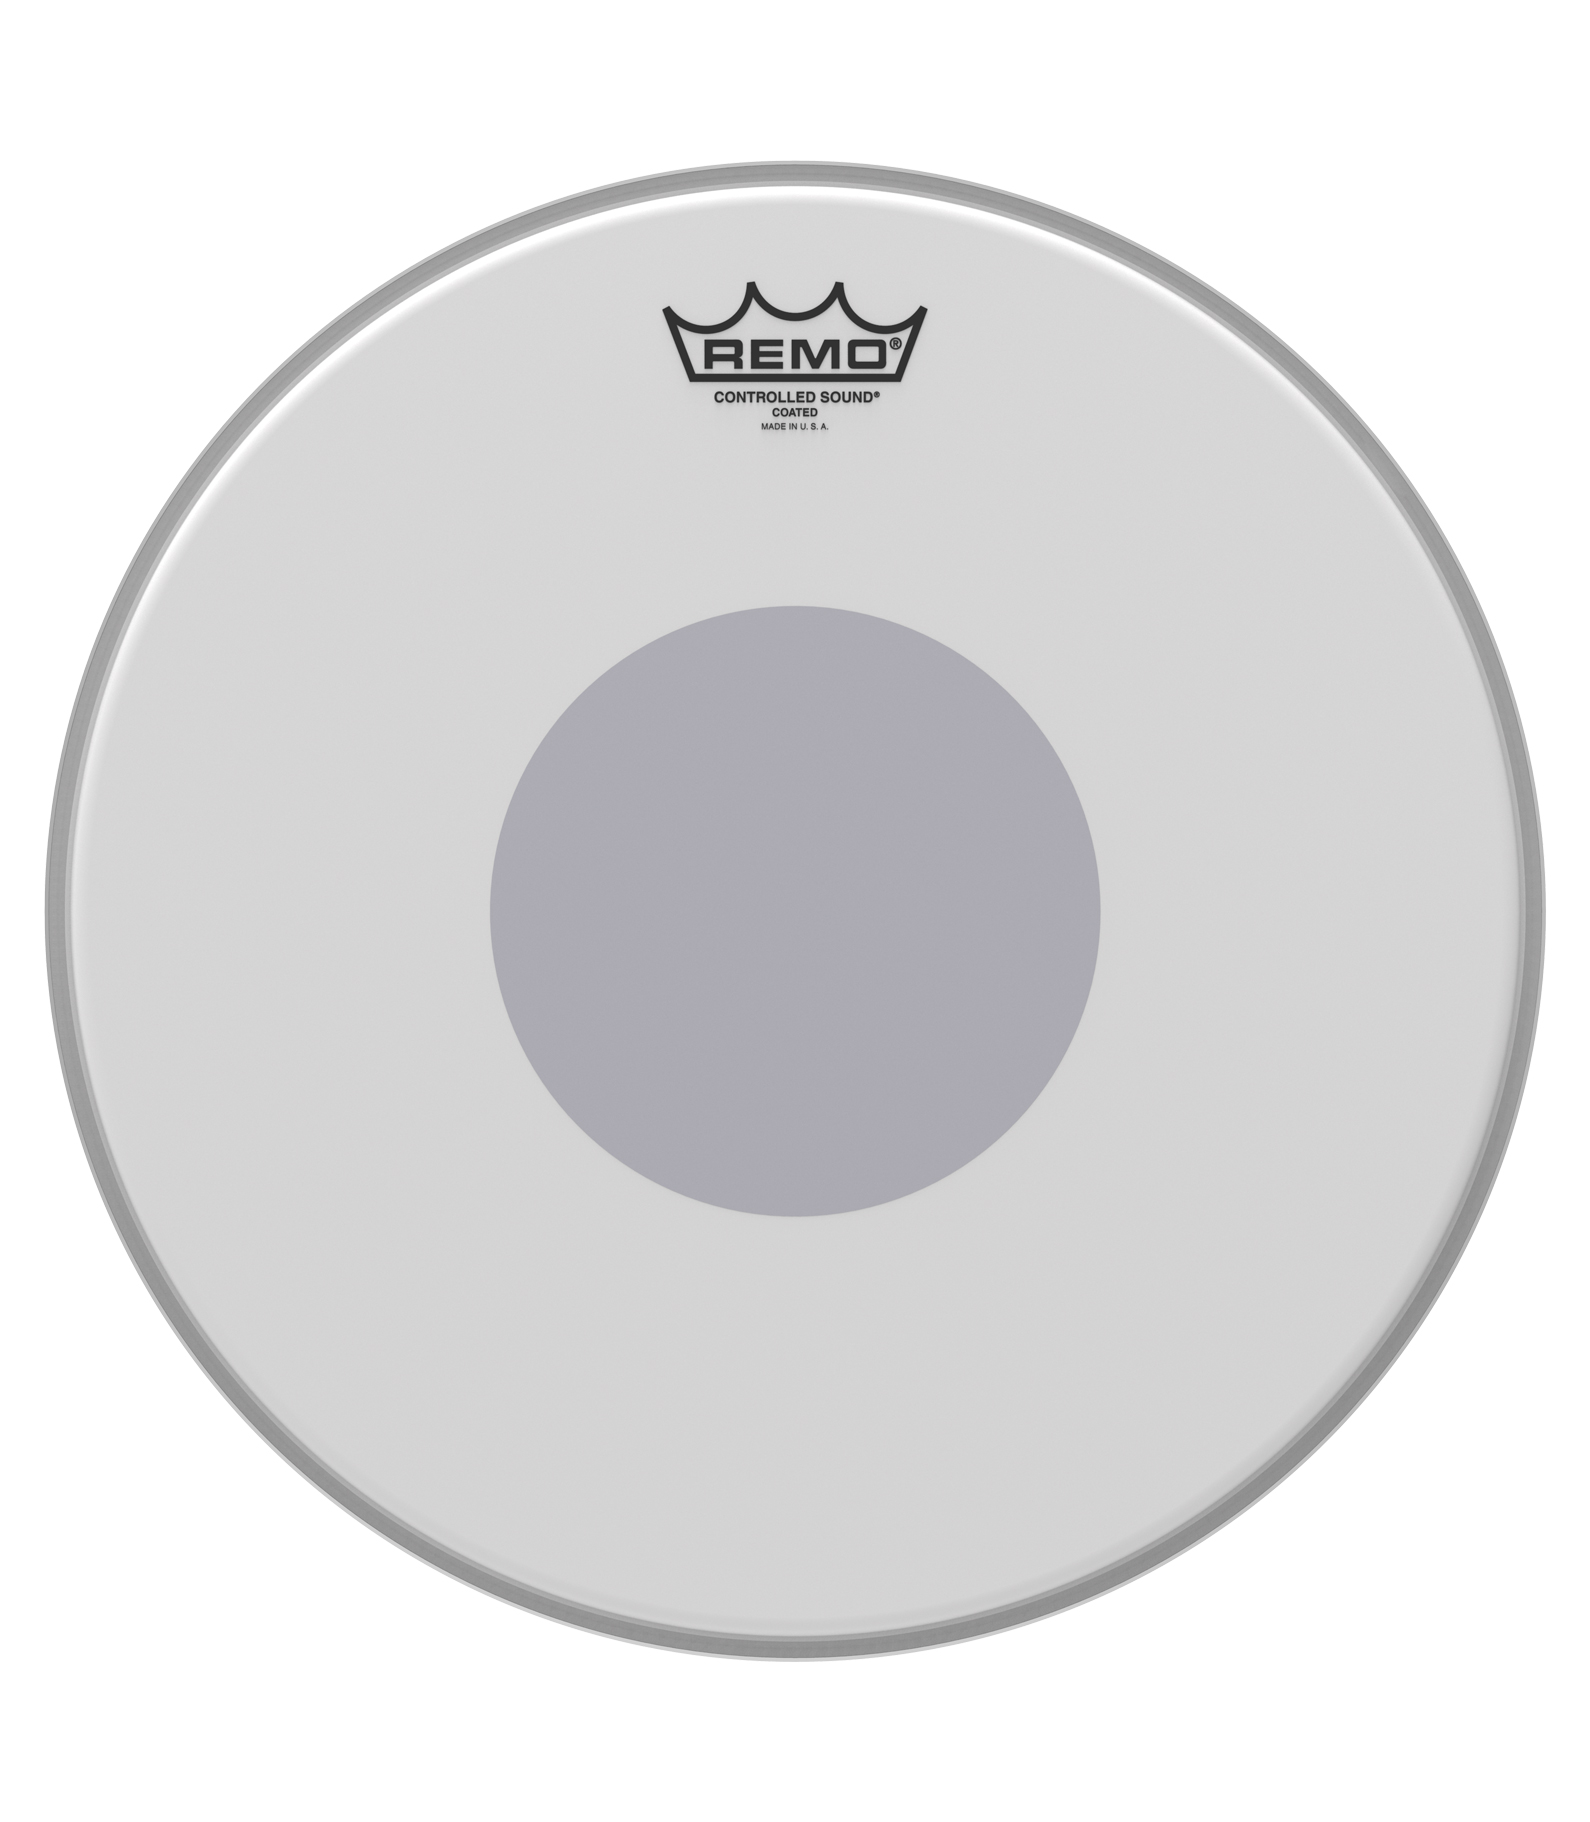 buy remo batter controlled sound coated 12 diameter b